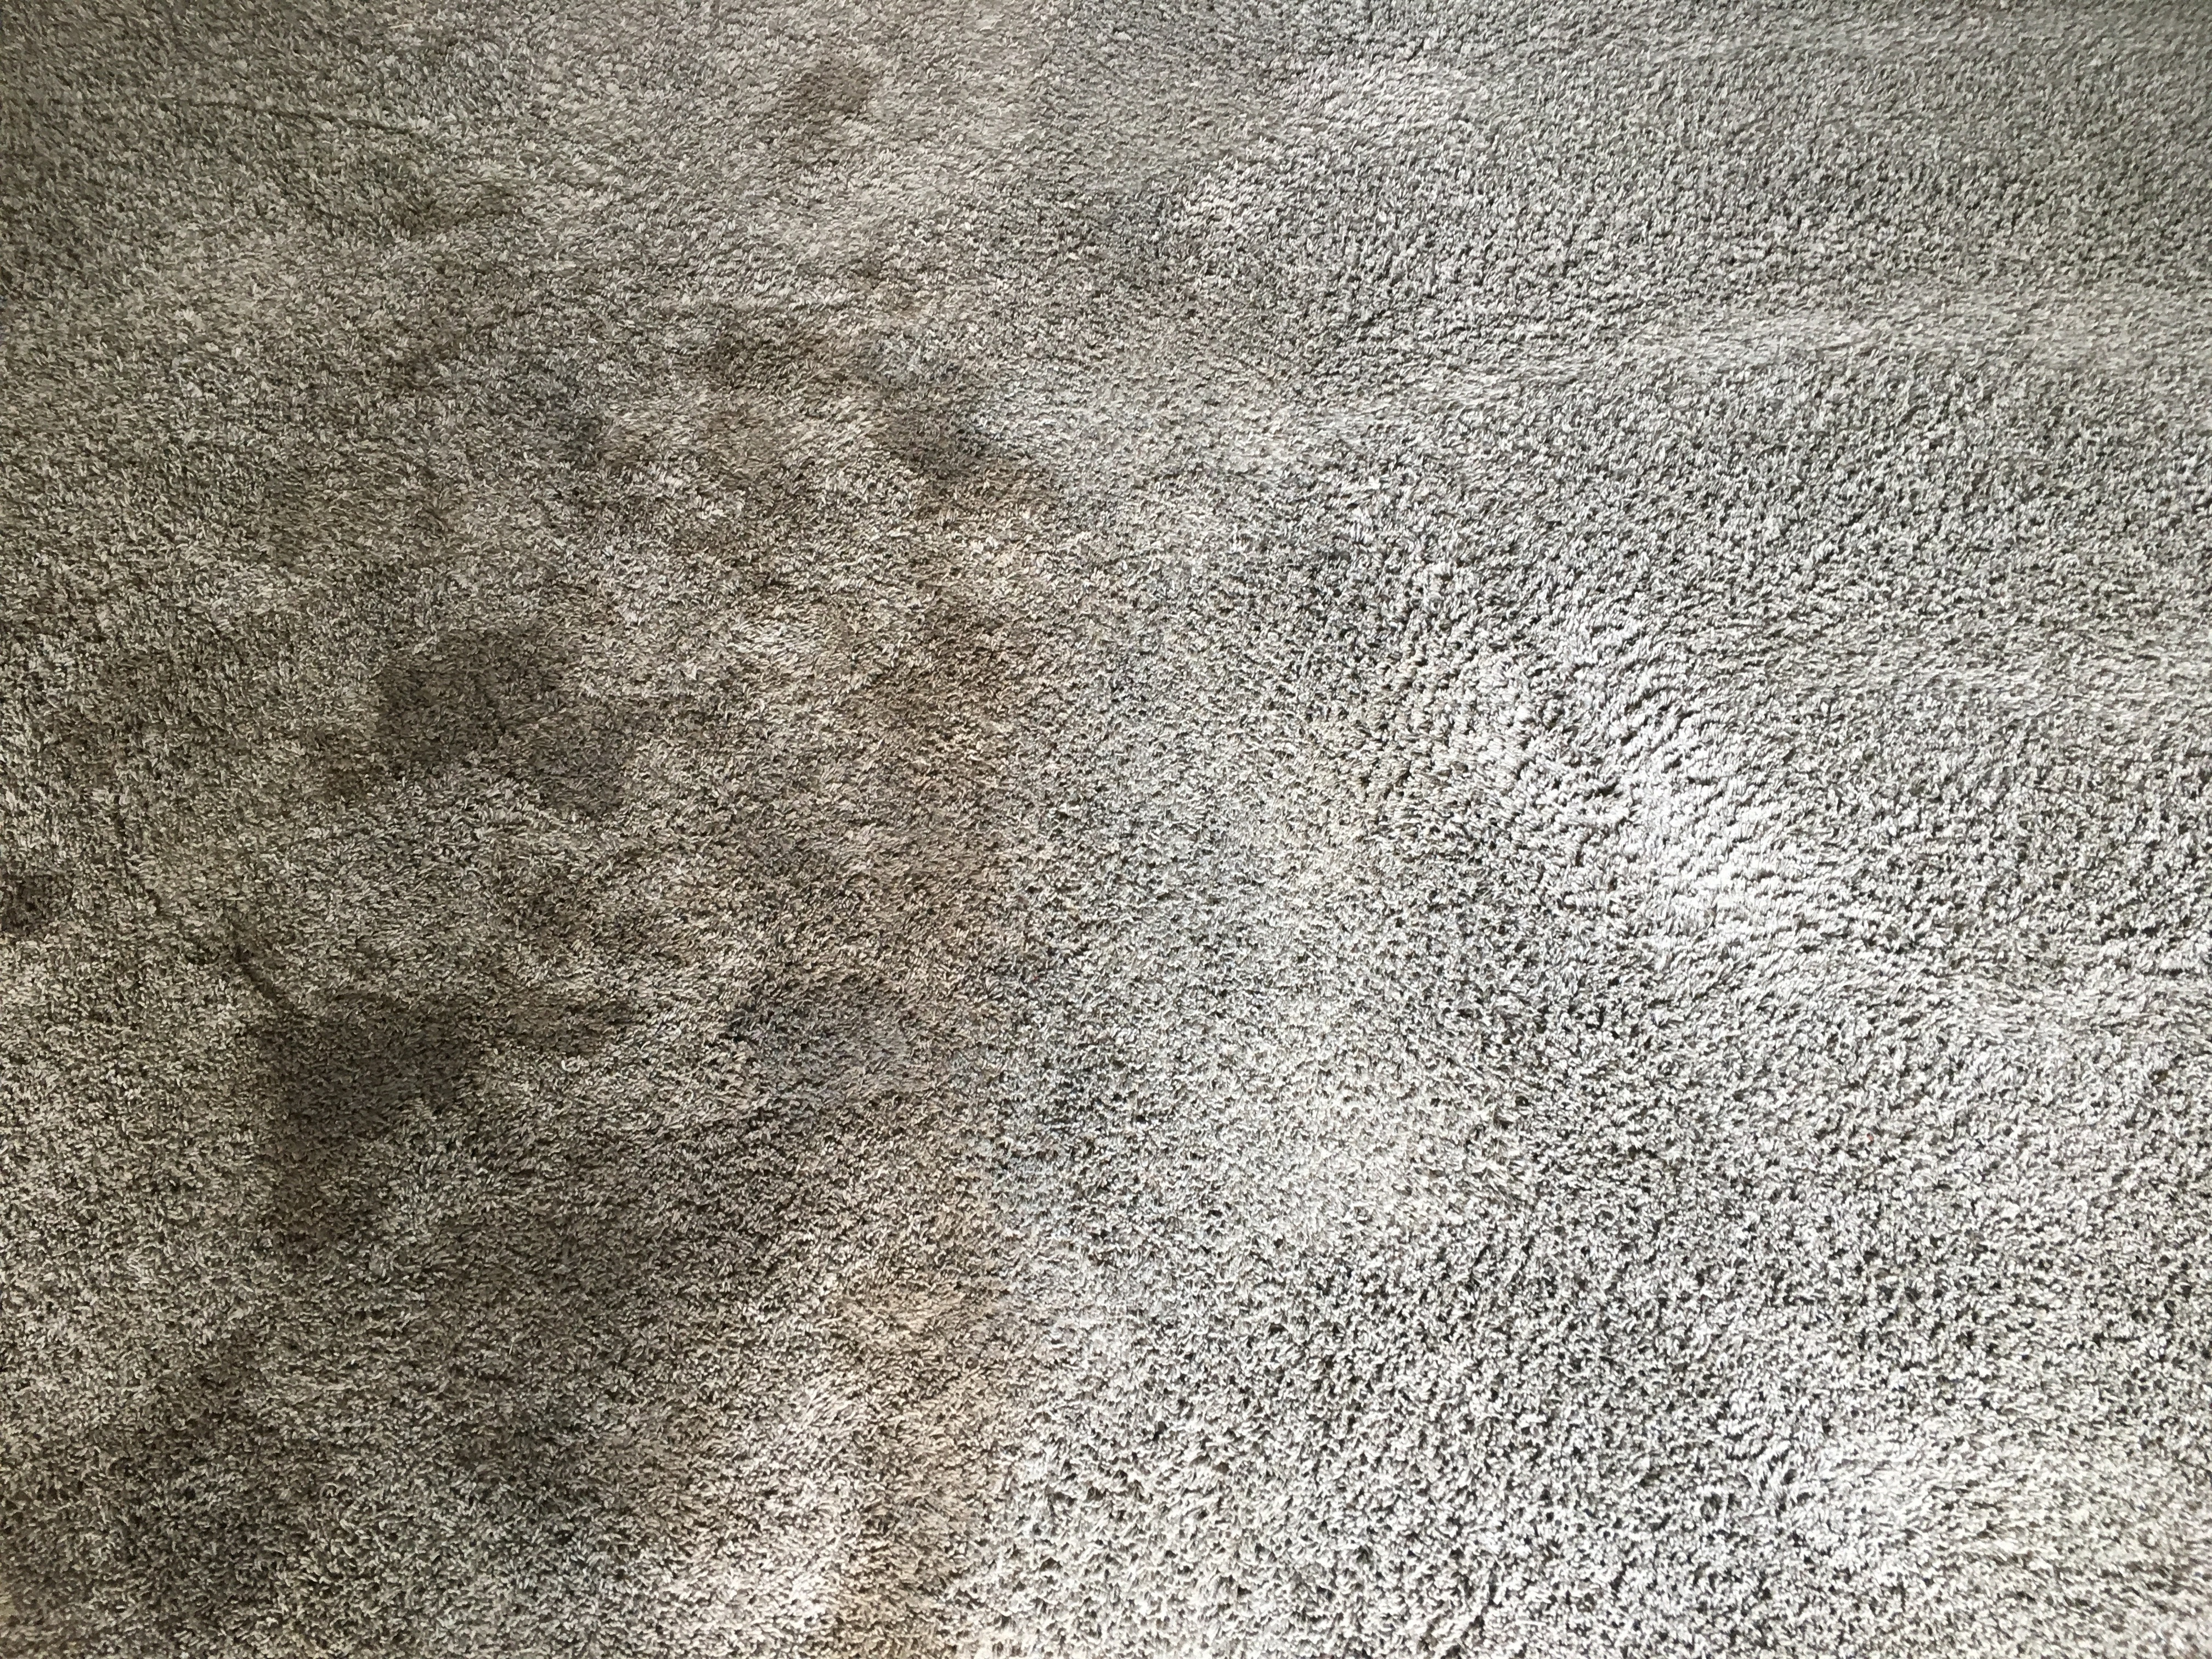 Customer's carpet before and after